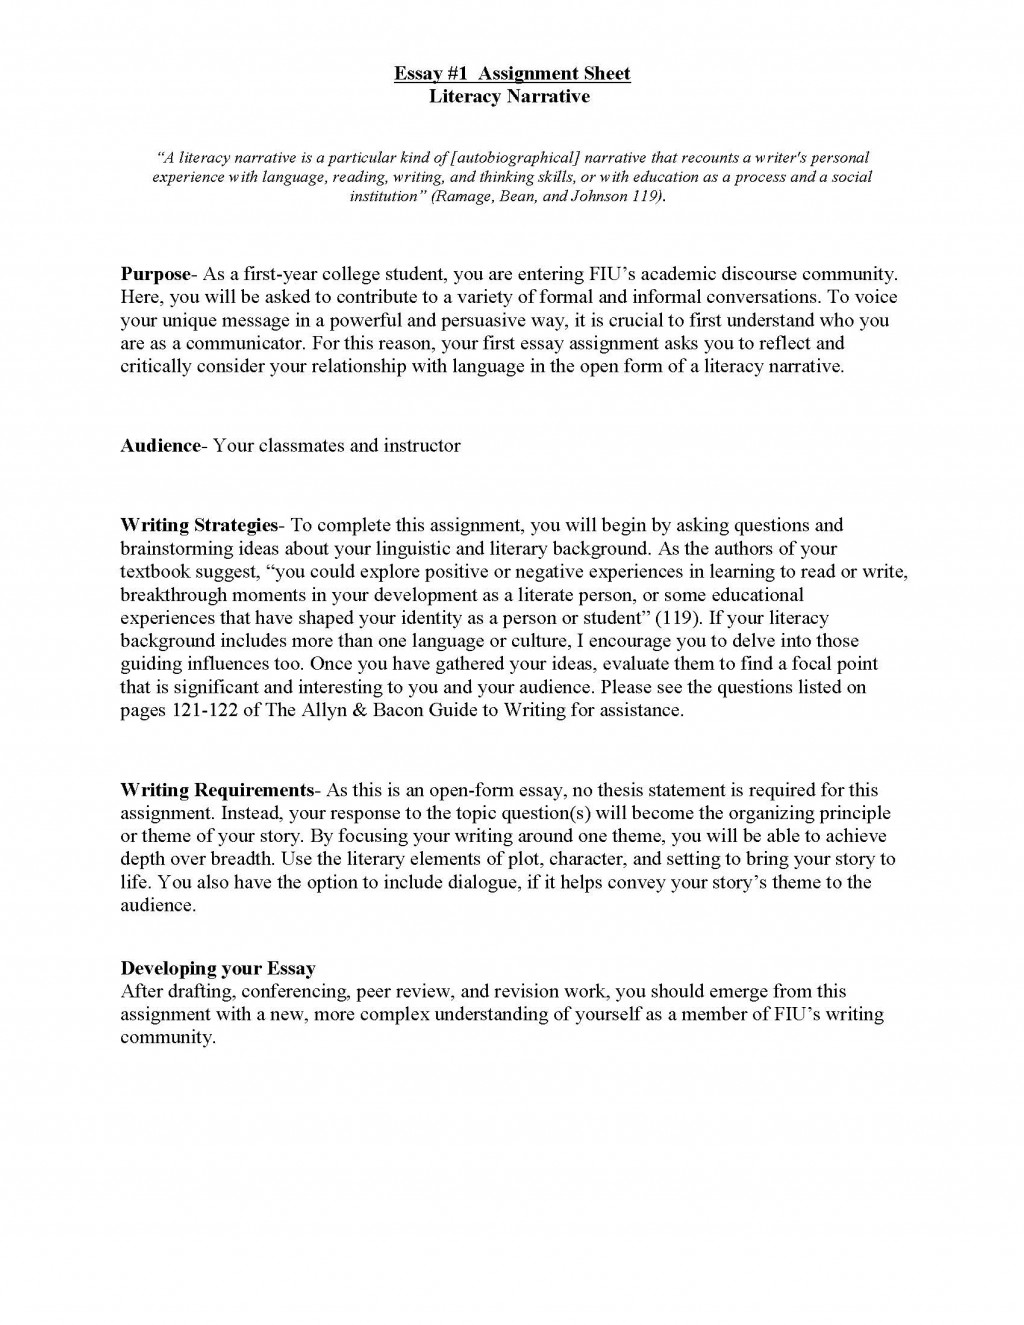 013 Example Of Narrative Essay Literacy Unit Assignment Spring 2012 Page 1 Magnificent About Yourself Introduction Friendship Large